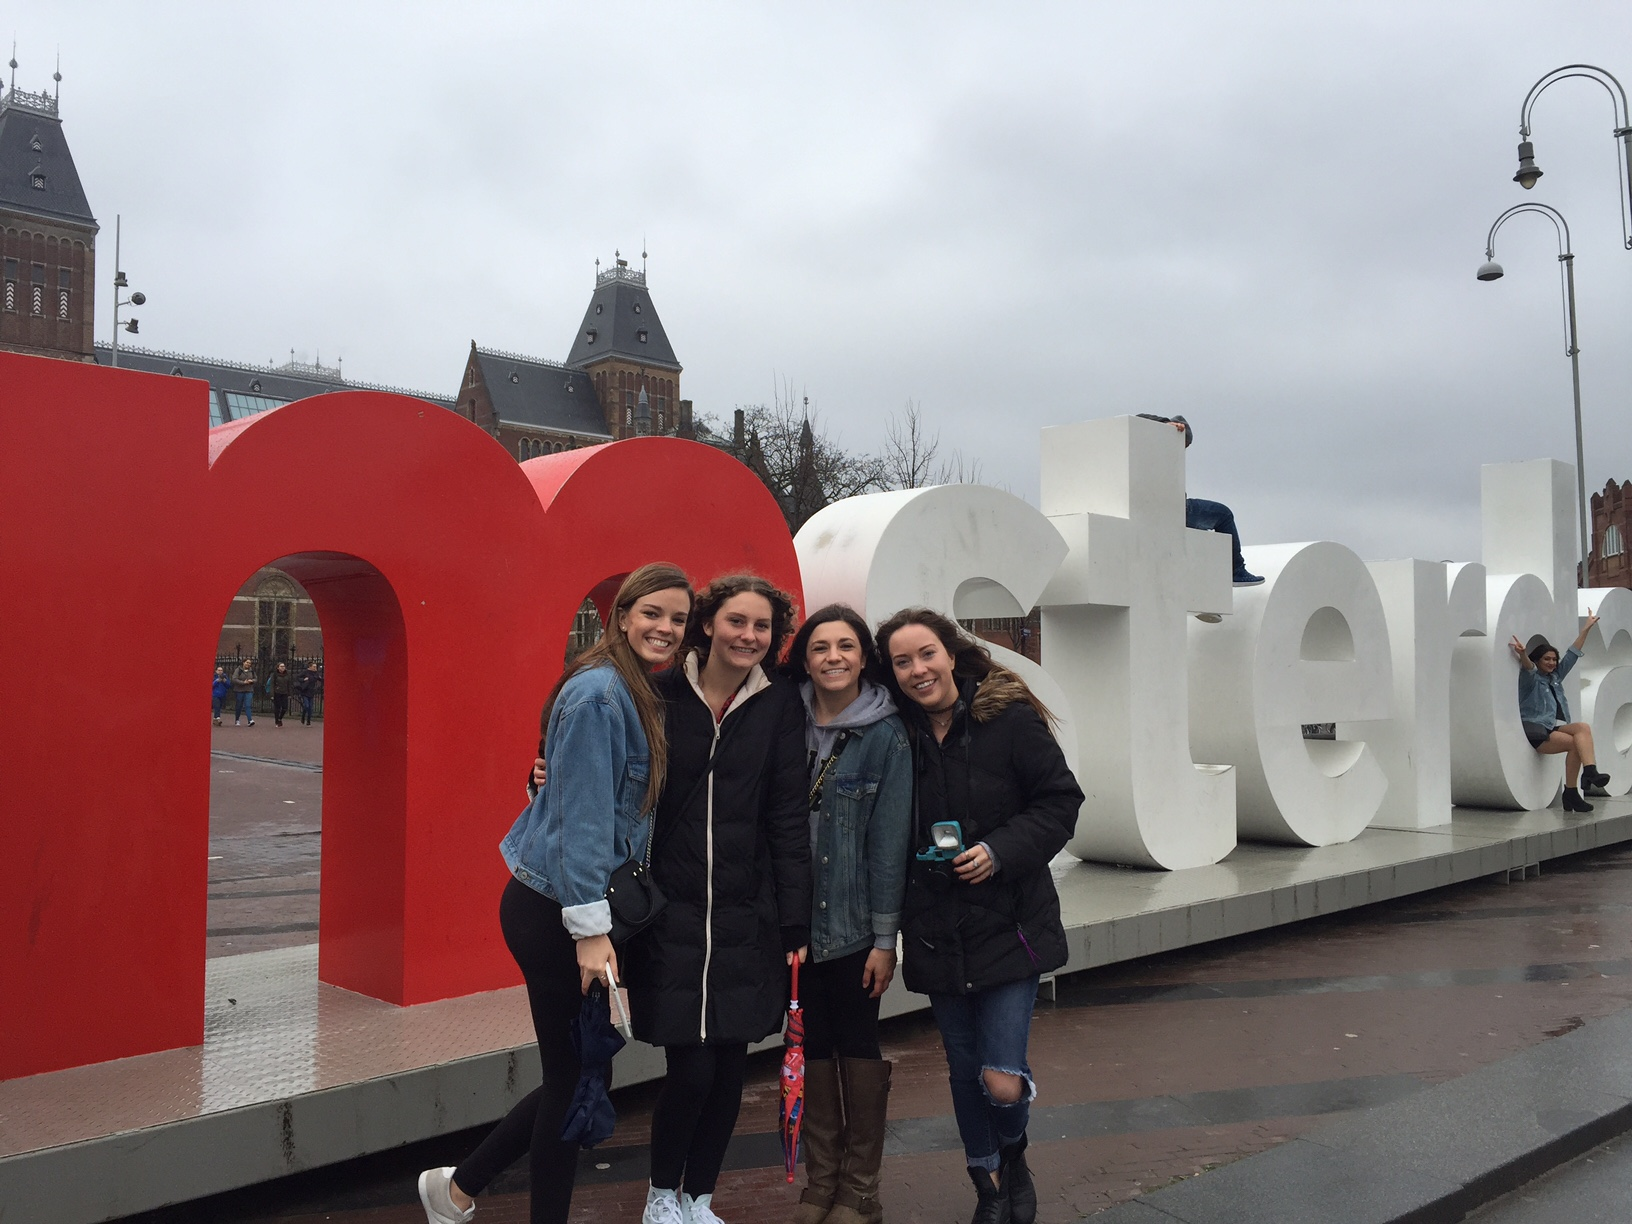 Did anyone really go to Amsterdam without taking a photo at the I Amsterdam sign?